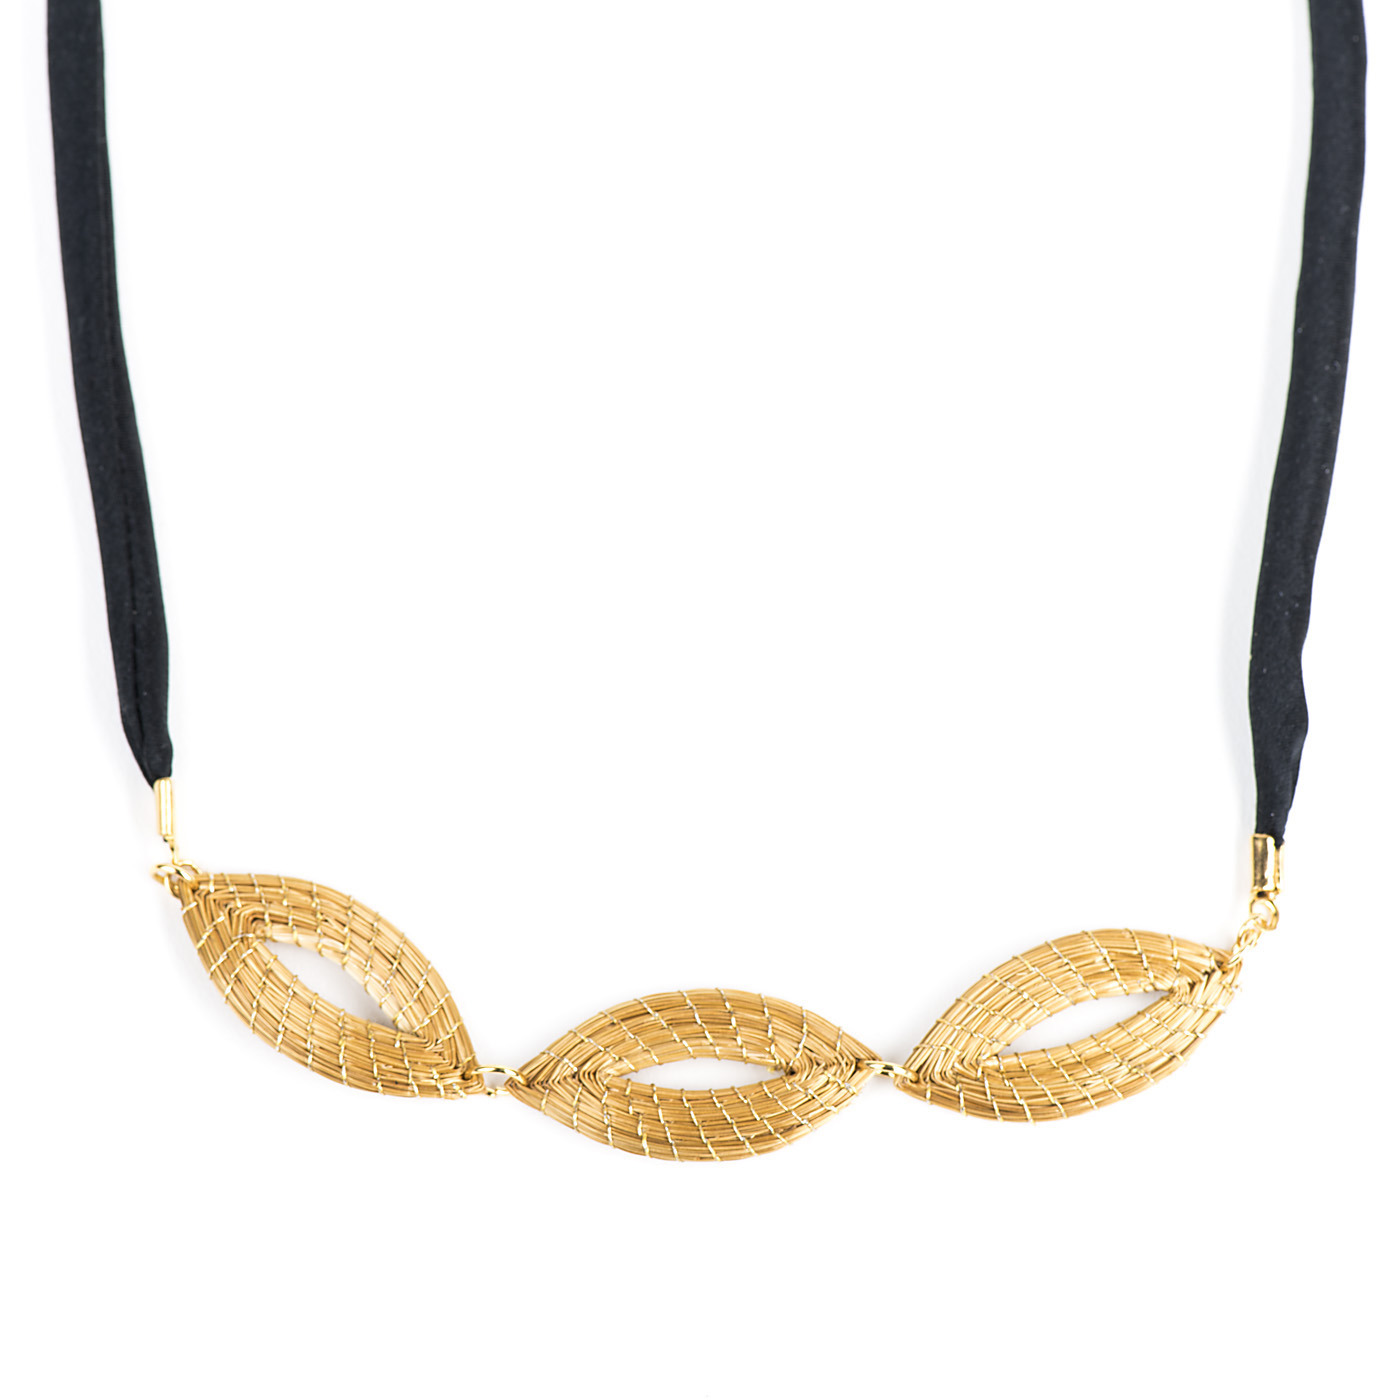 Artisan, Eco-Friendly, Designer Drift Trio Necklace